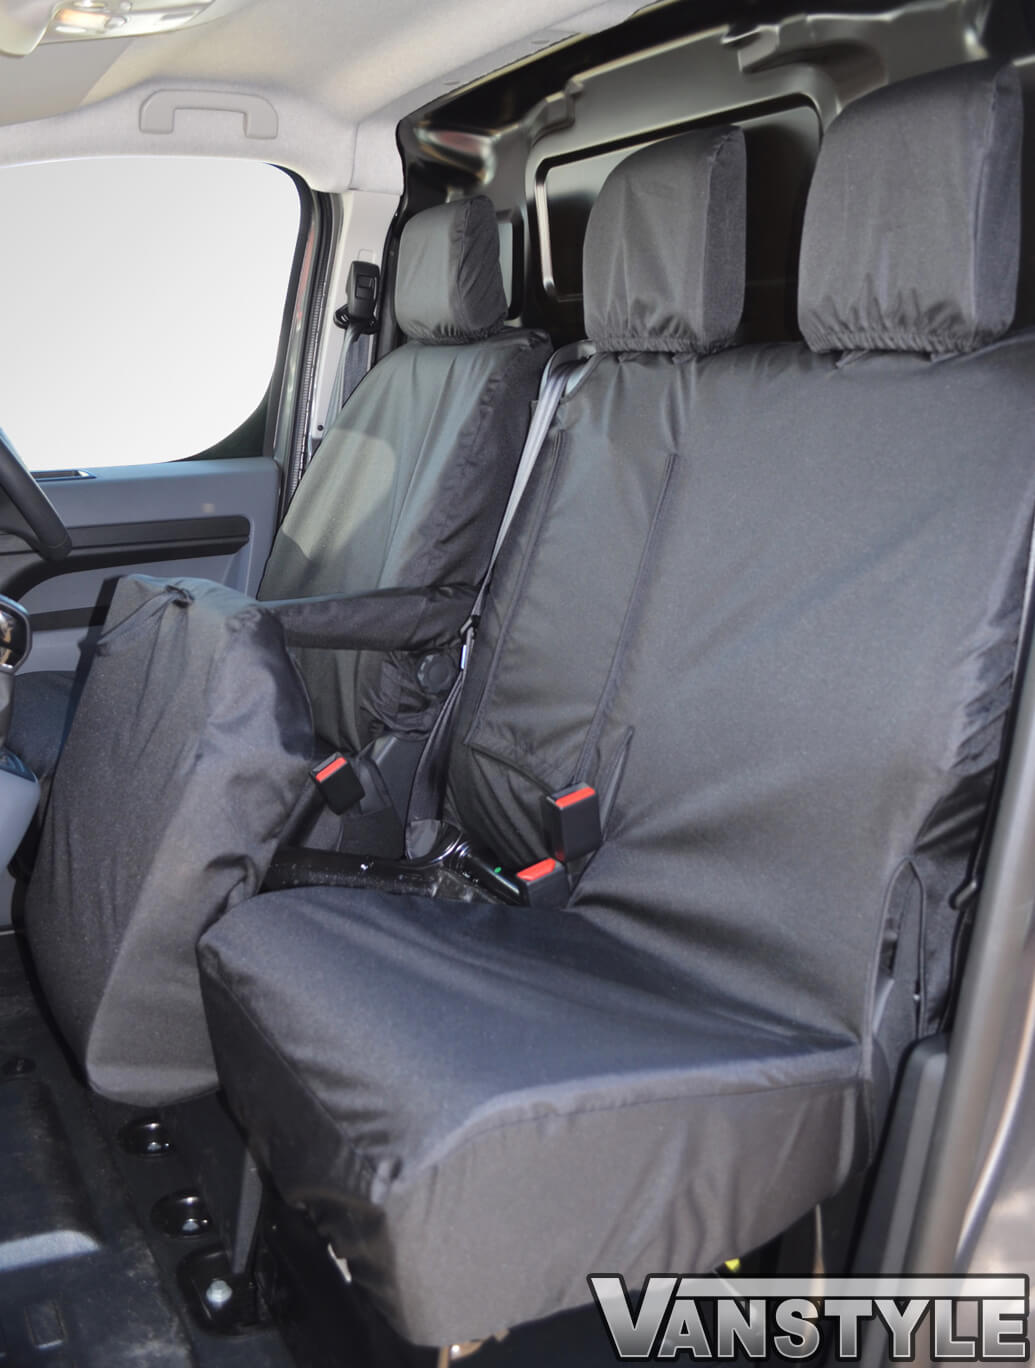 Black Rear Waterproof Car Seat Cover Protector For Peugeot Traveller 2016 On